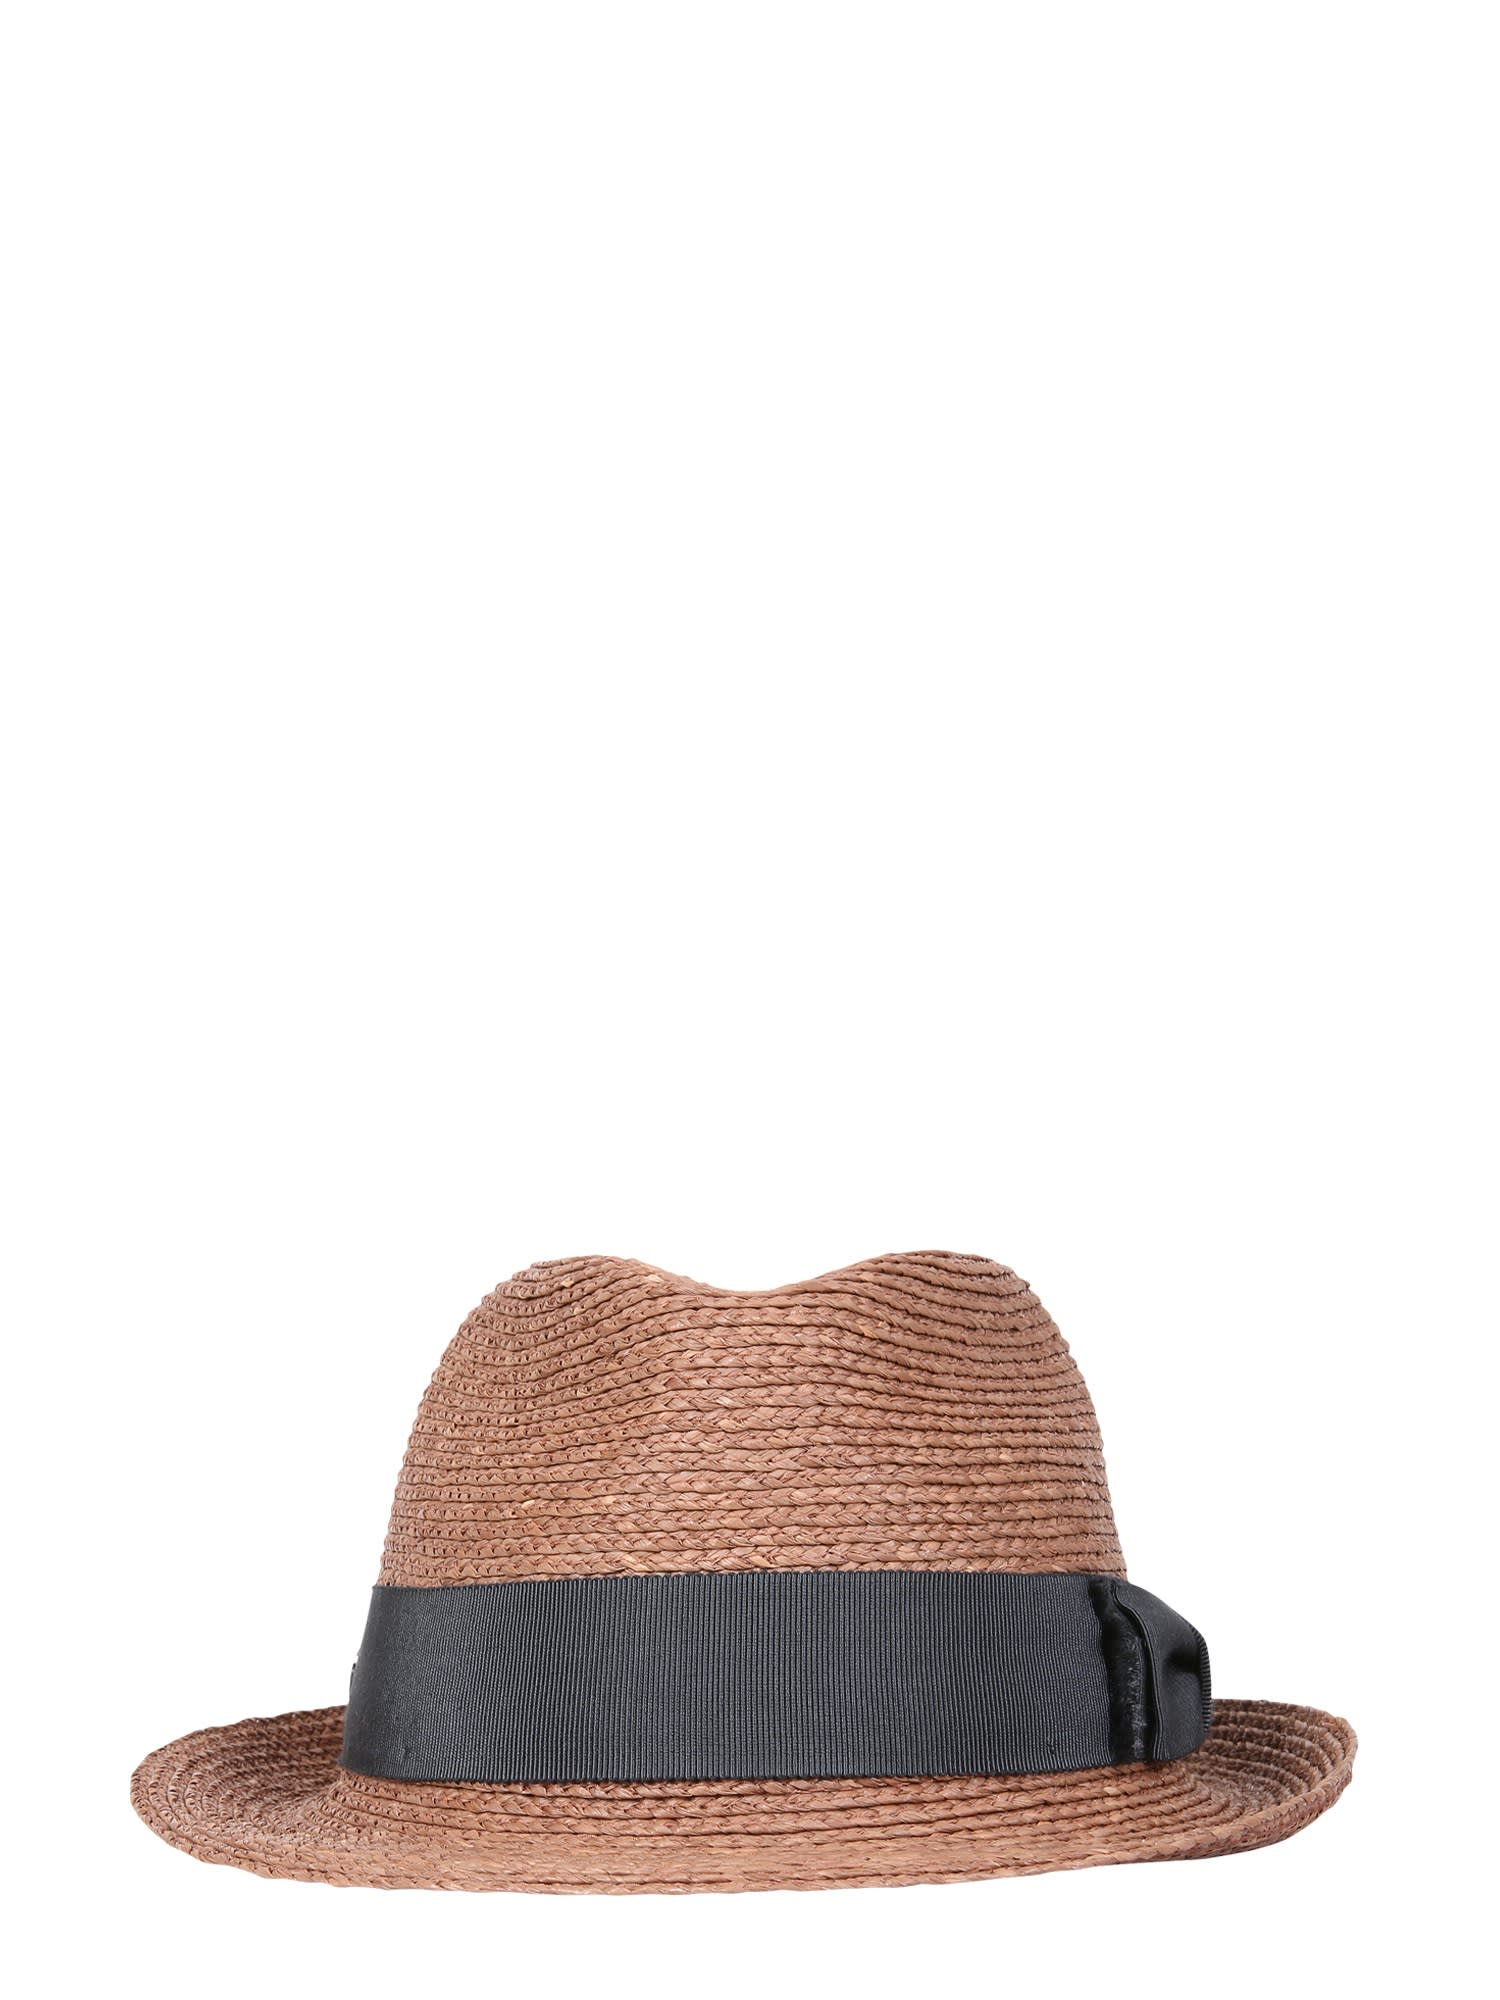 Lawrence Hat